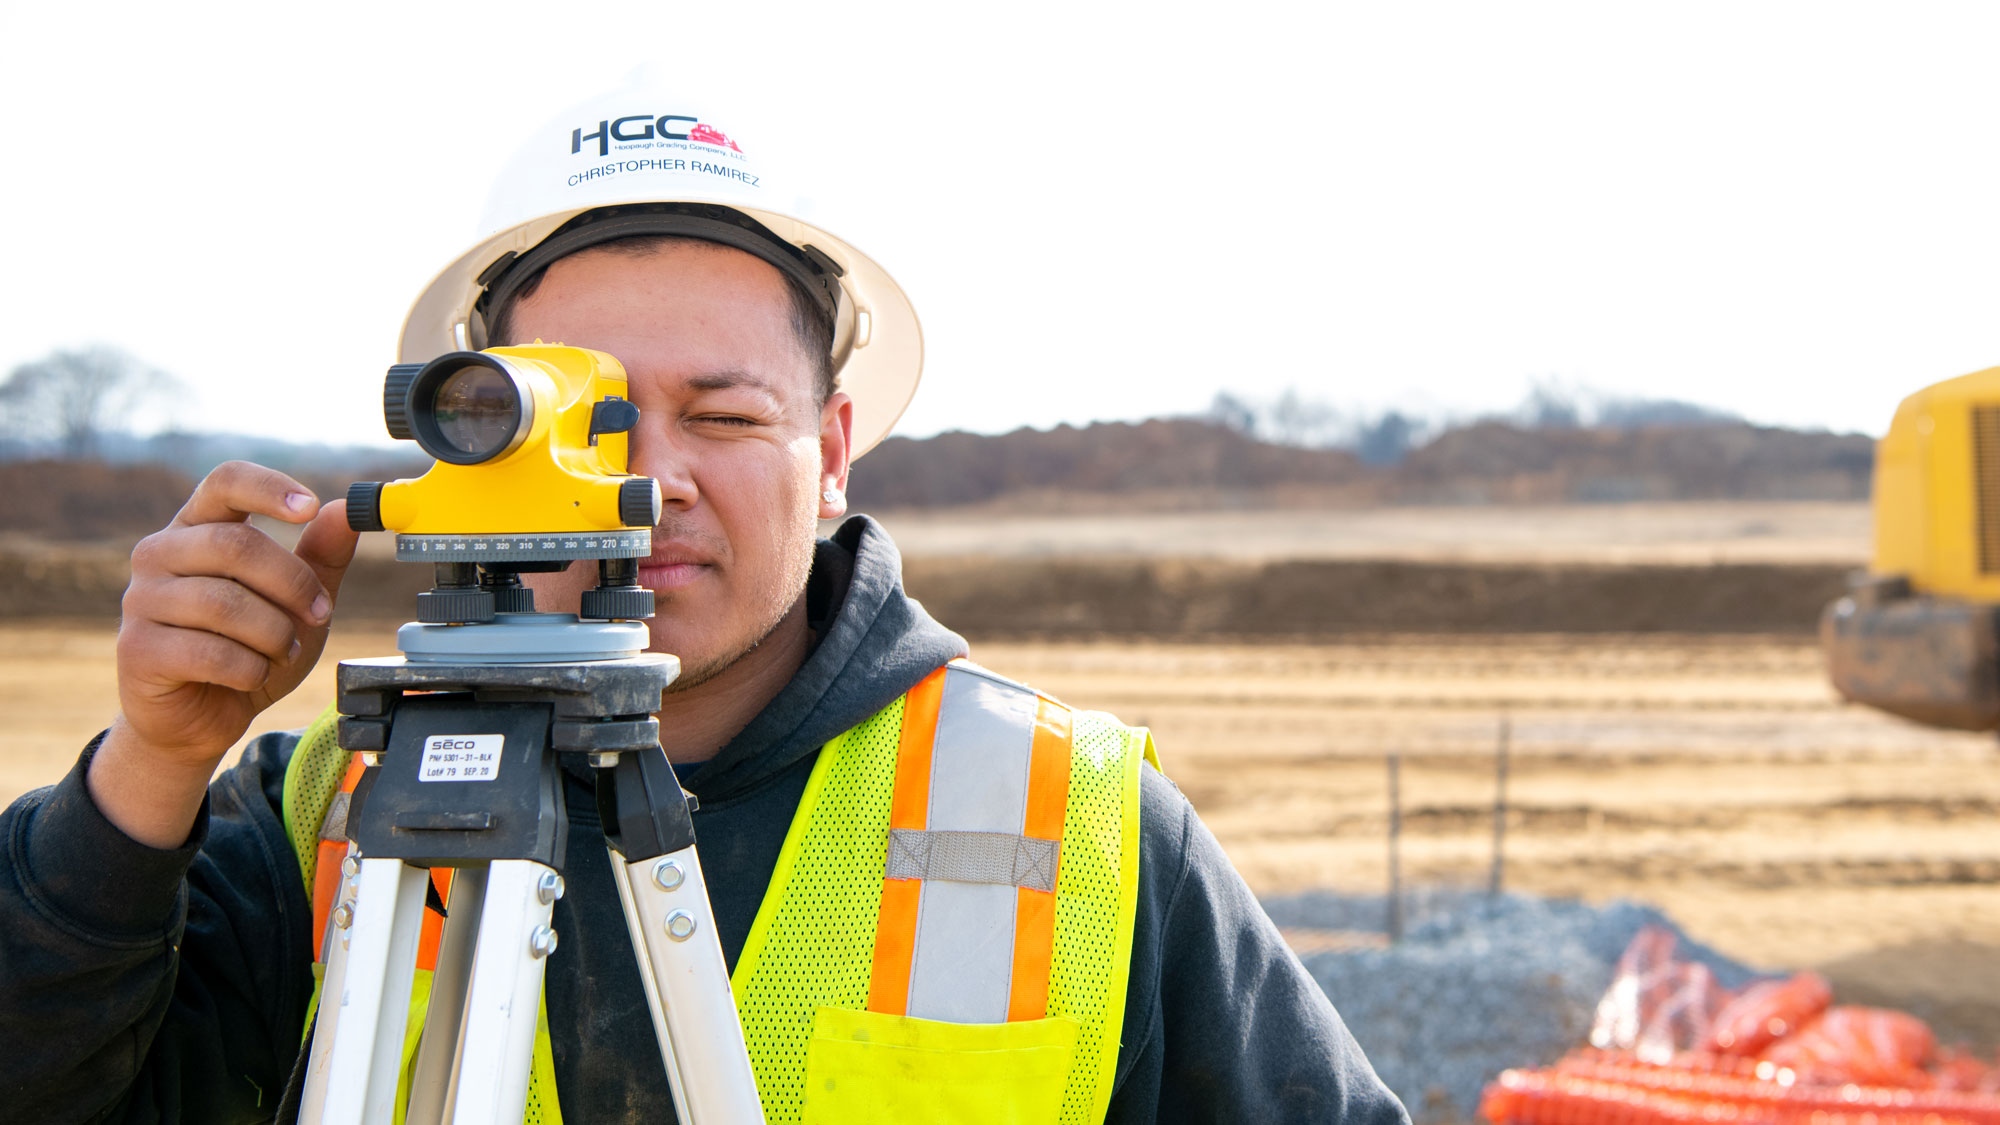 Project team member using surveying equipment.